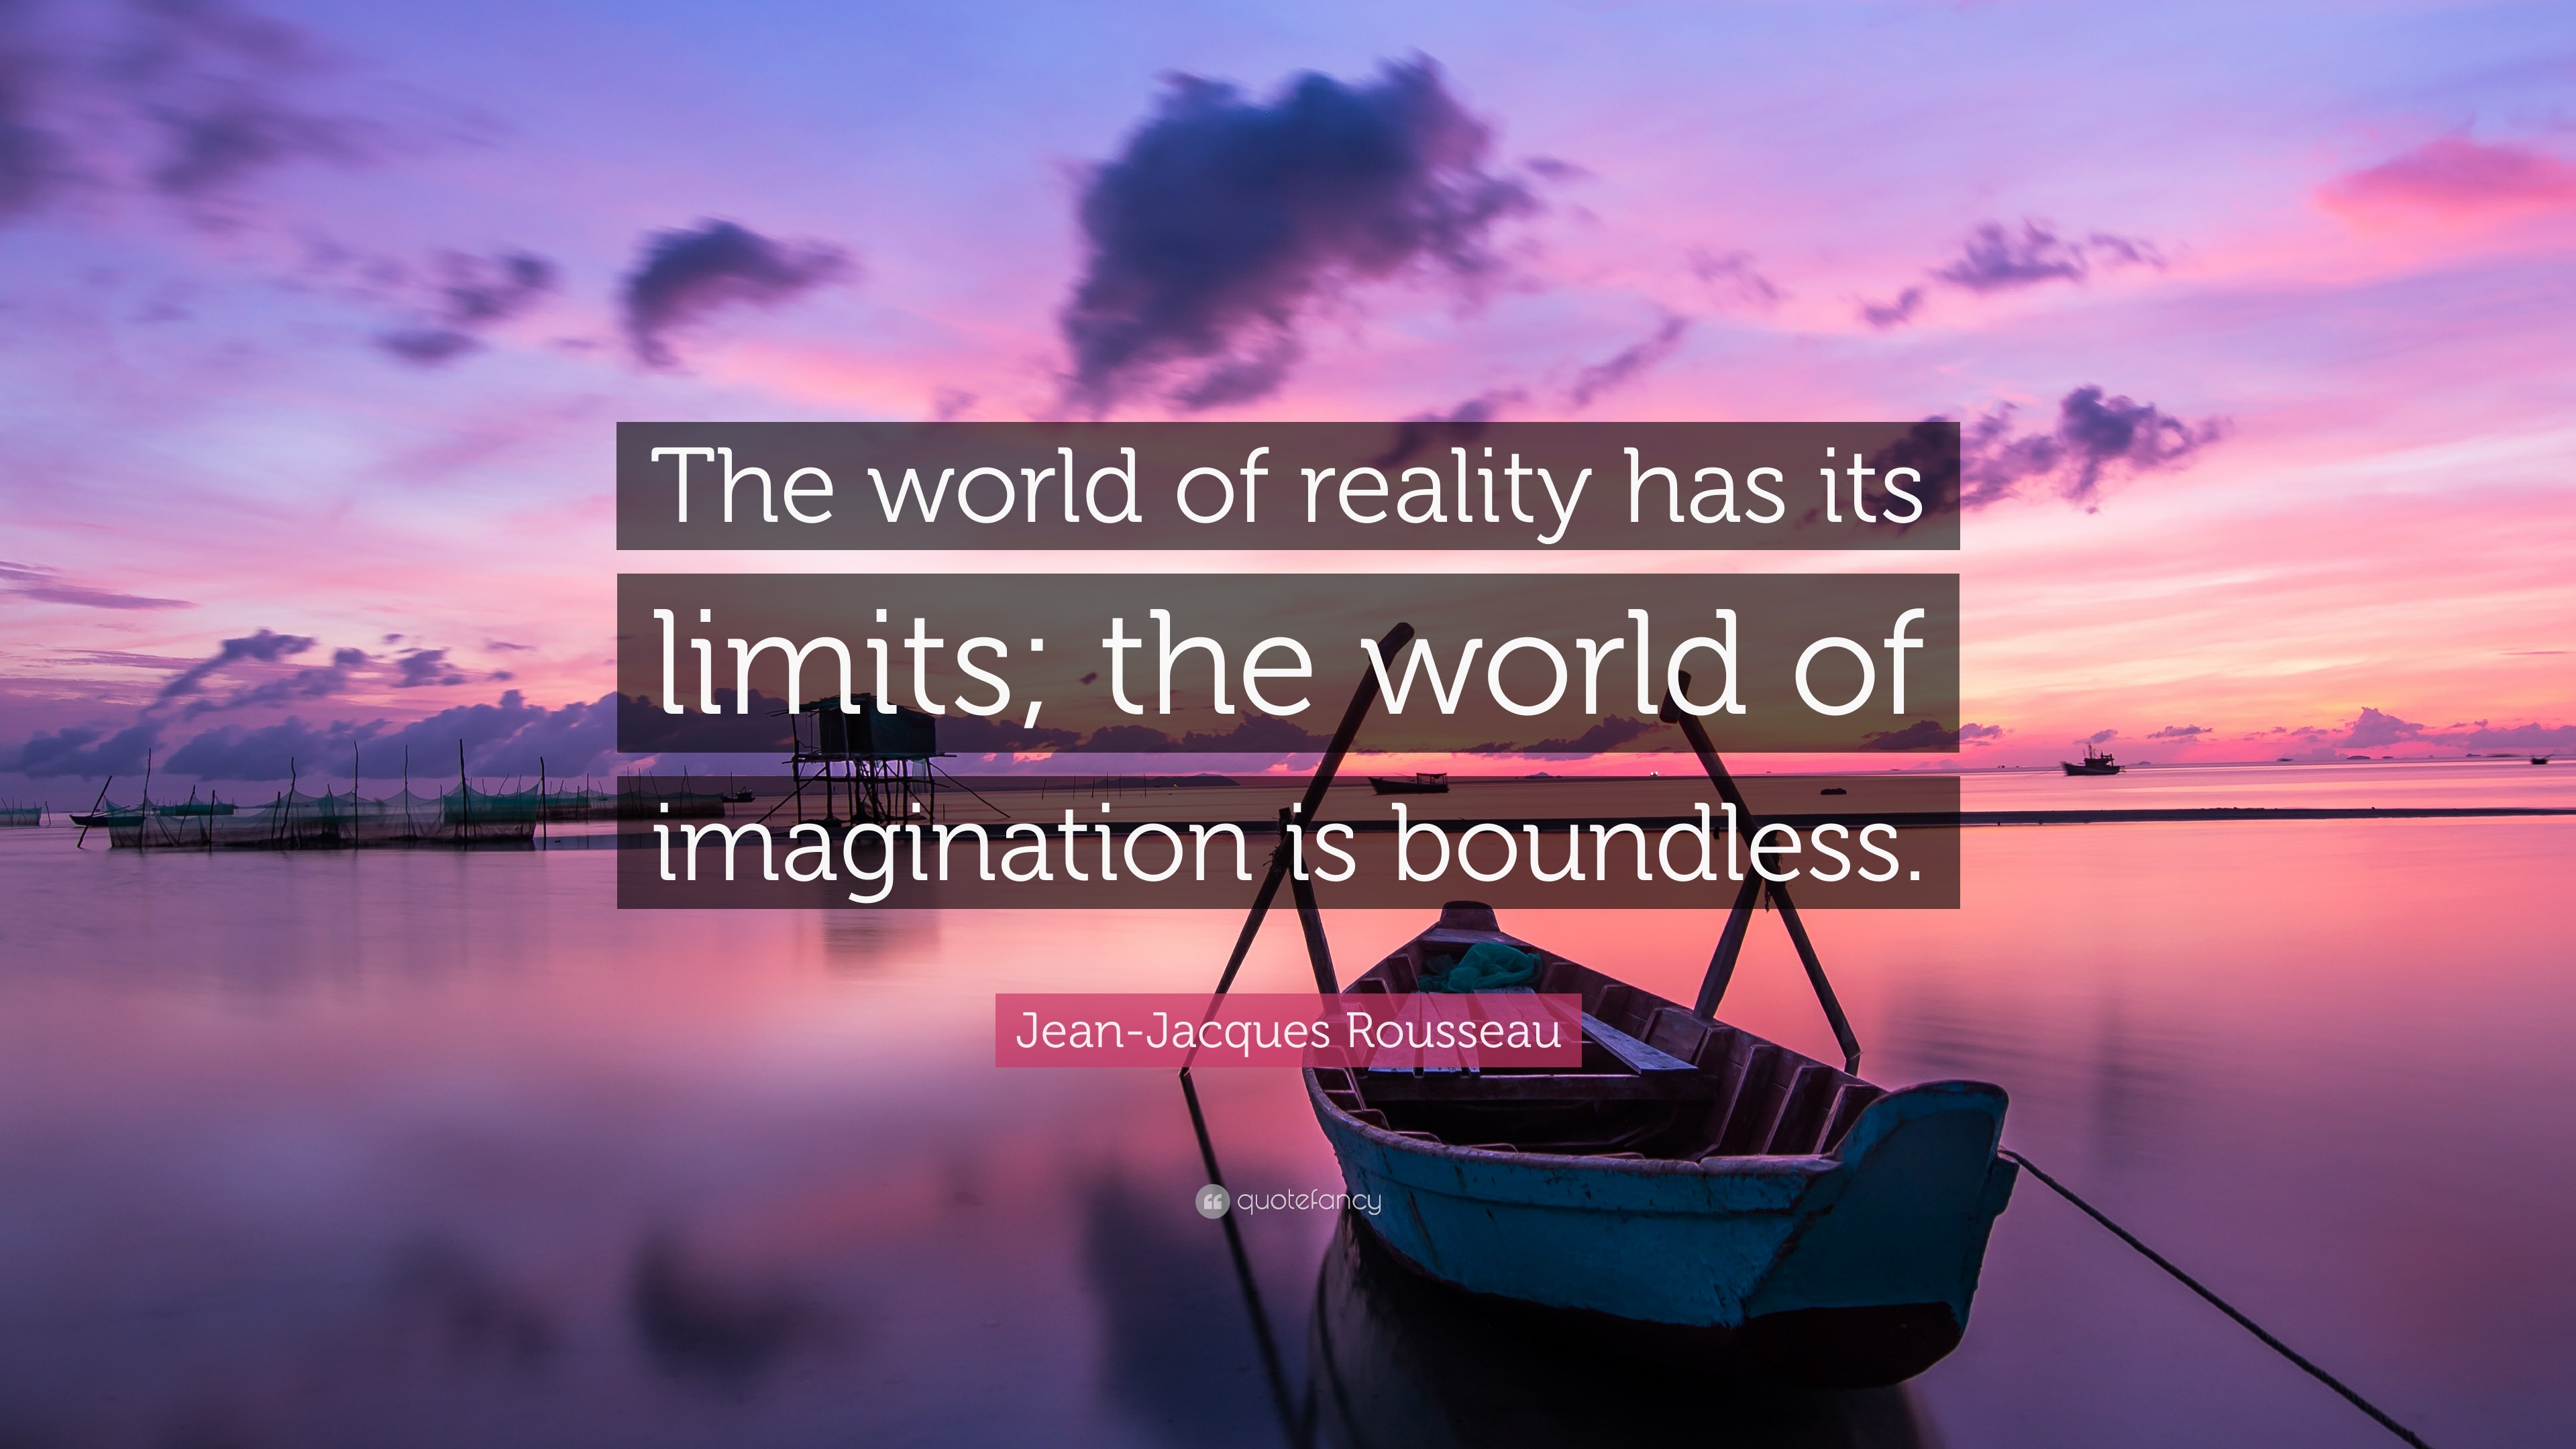 world of reality has limits but world of imagination is boundless Quote of the day: the world of reality has its limits the world of imagination is boundless – jean-jacques rousseau — sql joker (@sql_joker) february 23, 2018.